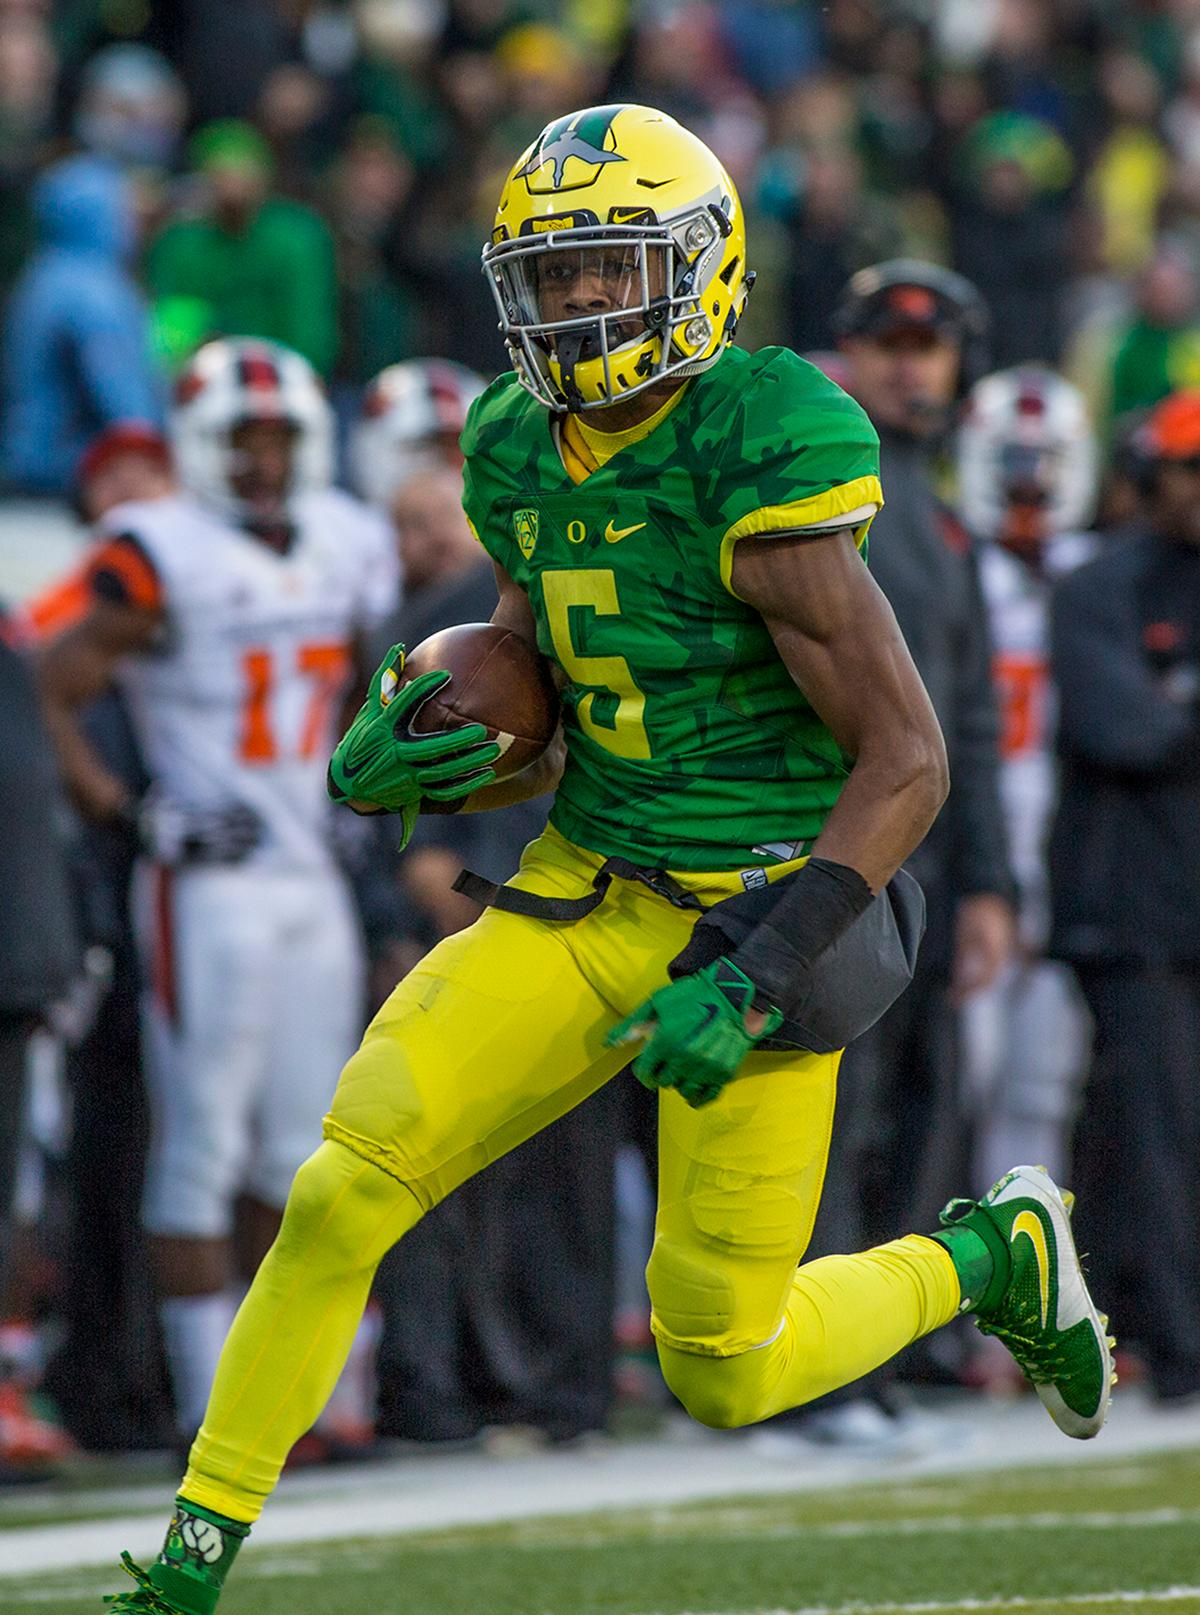 Oregon Ducks Taj Griffin (#5) runs the ball in for a touchdown against the Oregon State Beavers. The Oregon Ducks beat the Oregon State Beavers 52-42 in the 119th Civil War for the eighth year in a row at Autzen Stadium on Friday afternoon. Katie Pietzold, Oregon News Lab